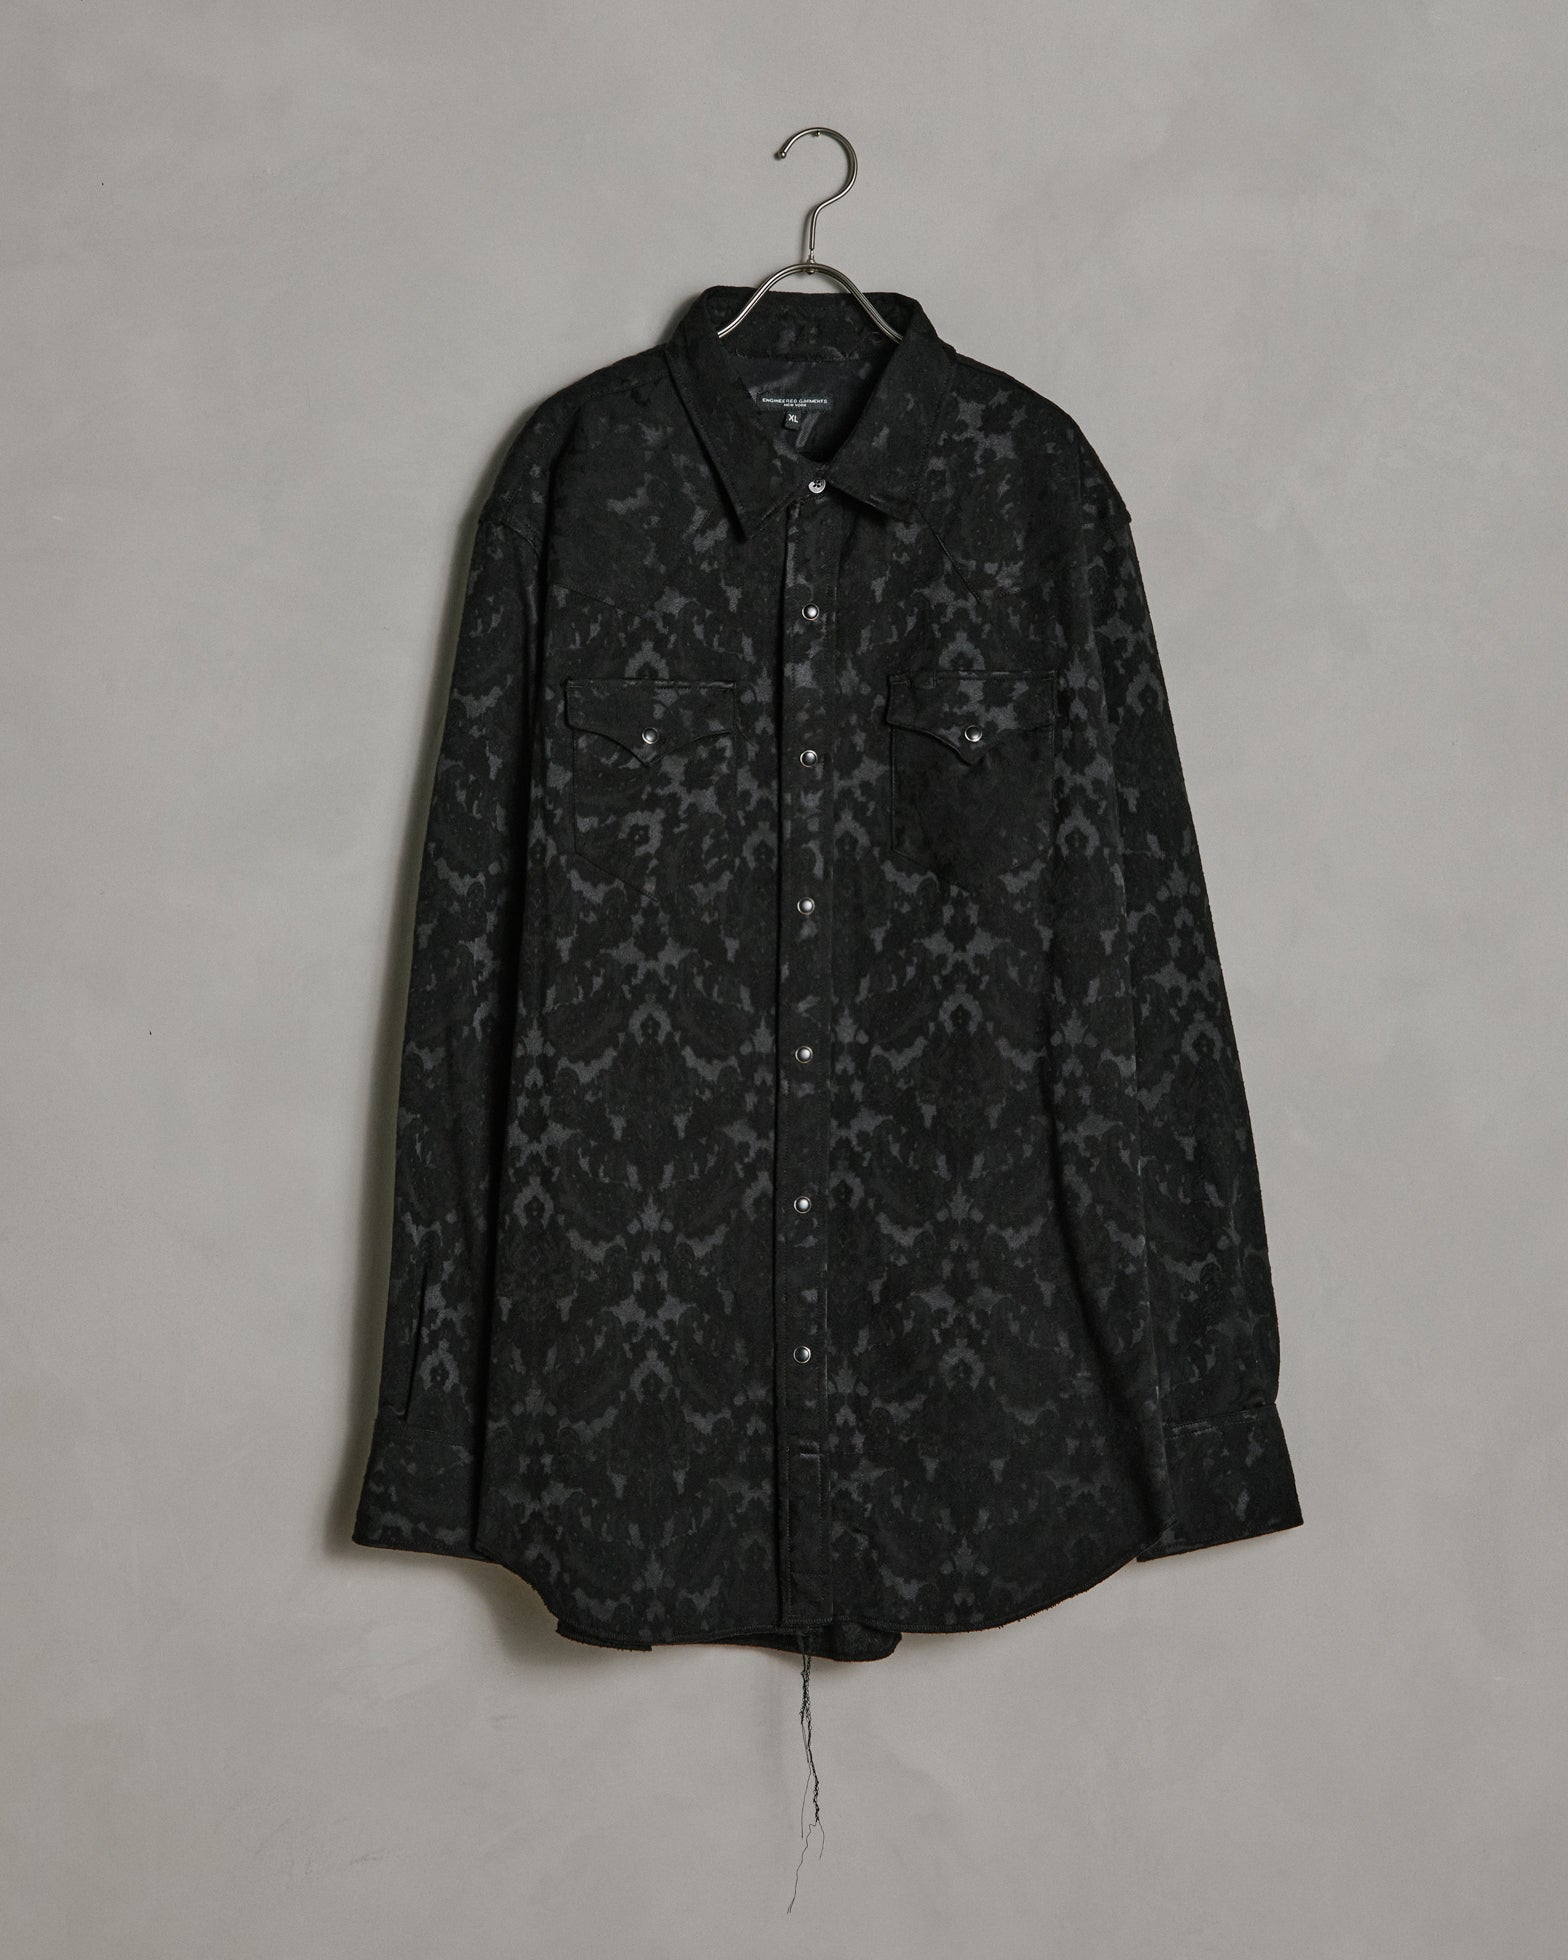 Western Shirt in Black Paisley